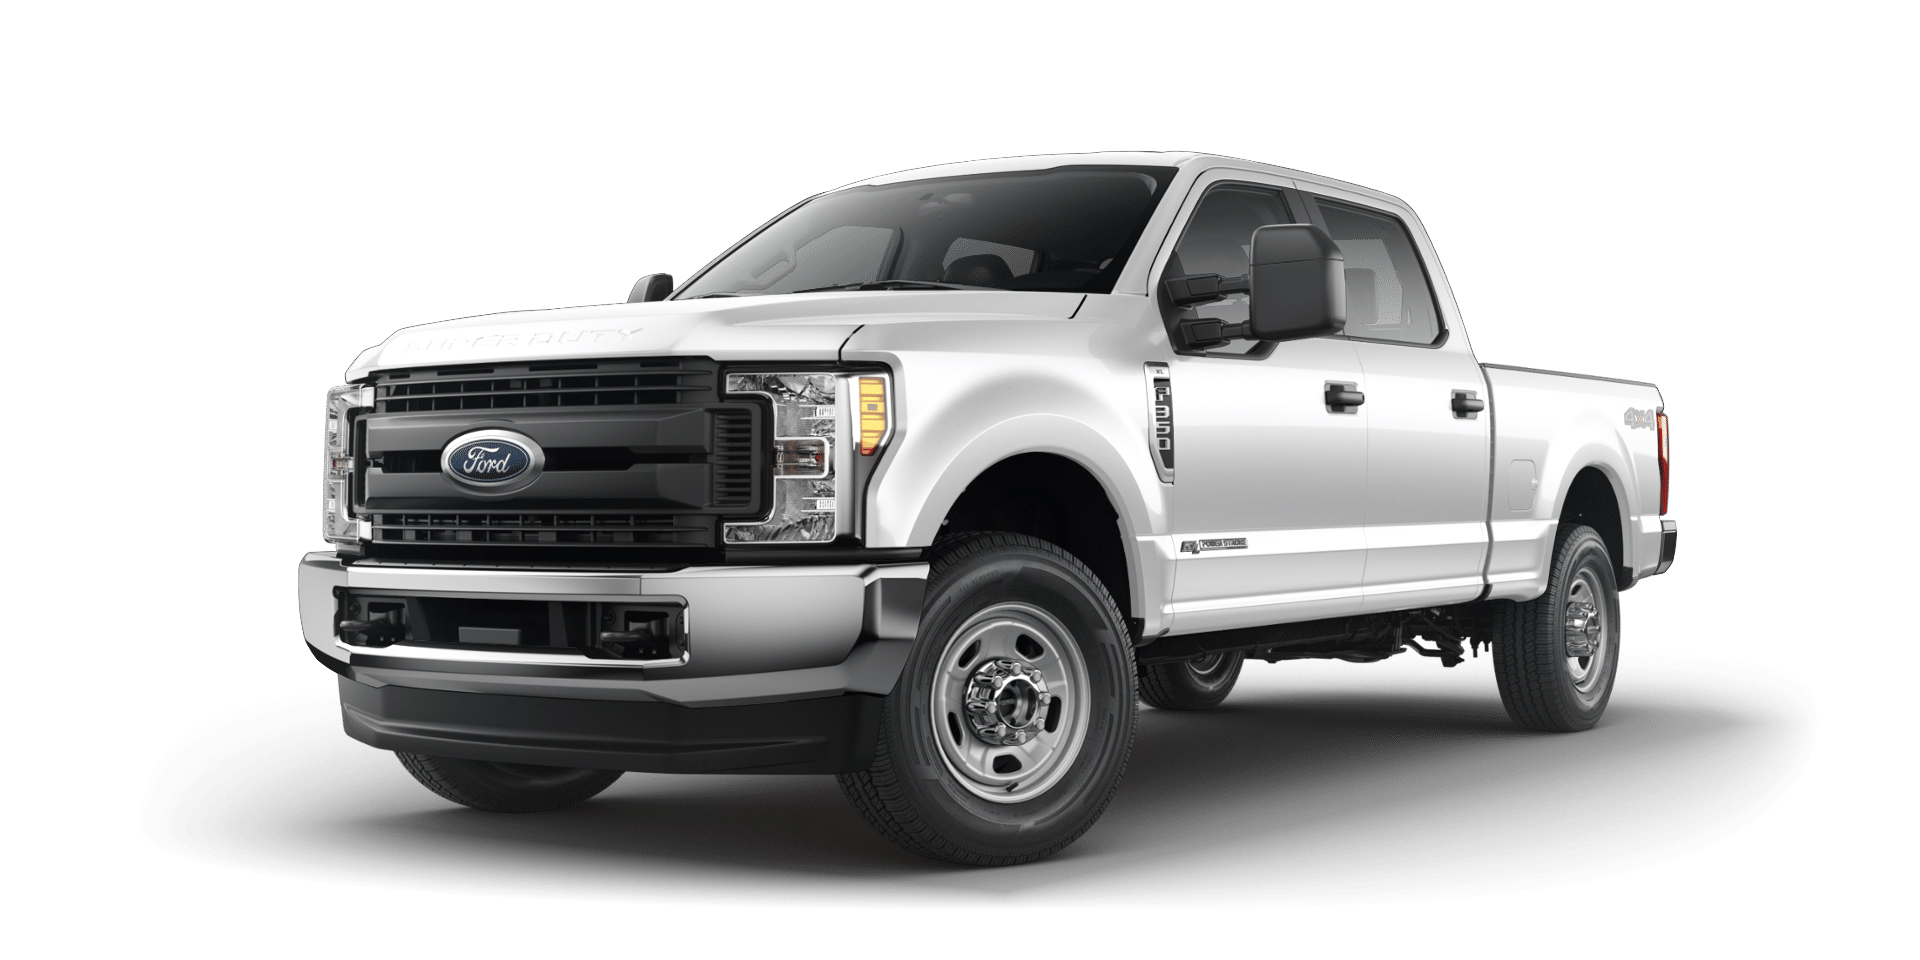 Ford Recalls F-Series Crew Cab Trucks for Seat Belts